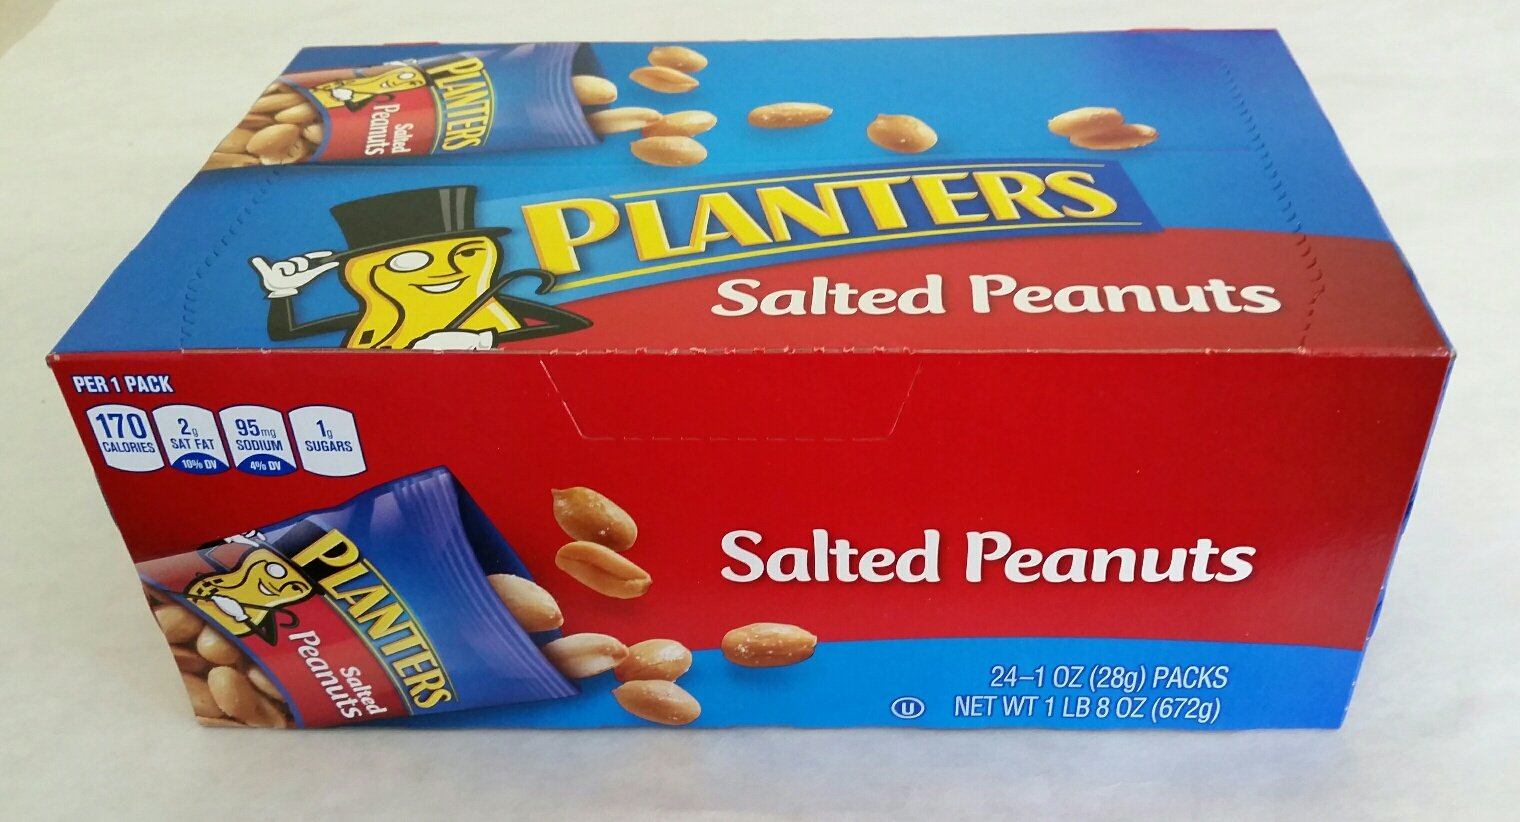 Planters Salted Peanuts 24/1 Oz Bags Healthy snack, Expertly roasted